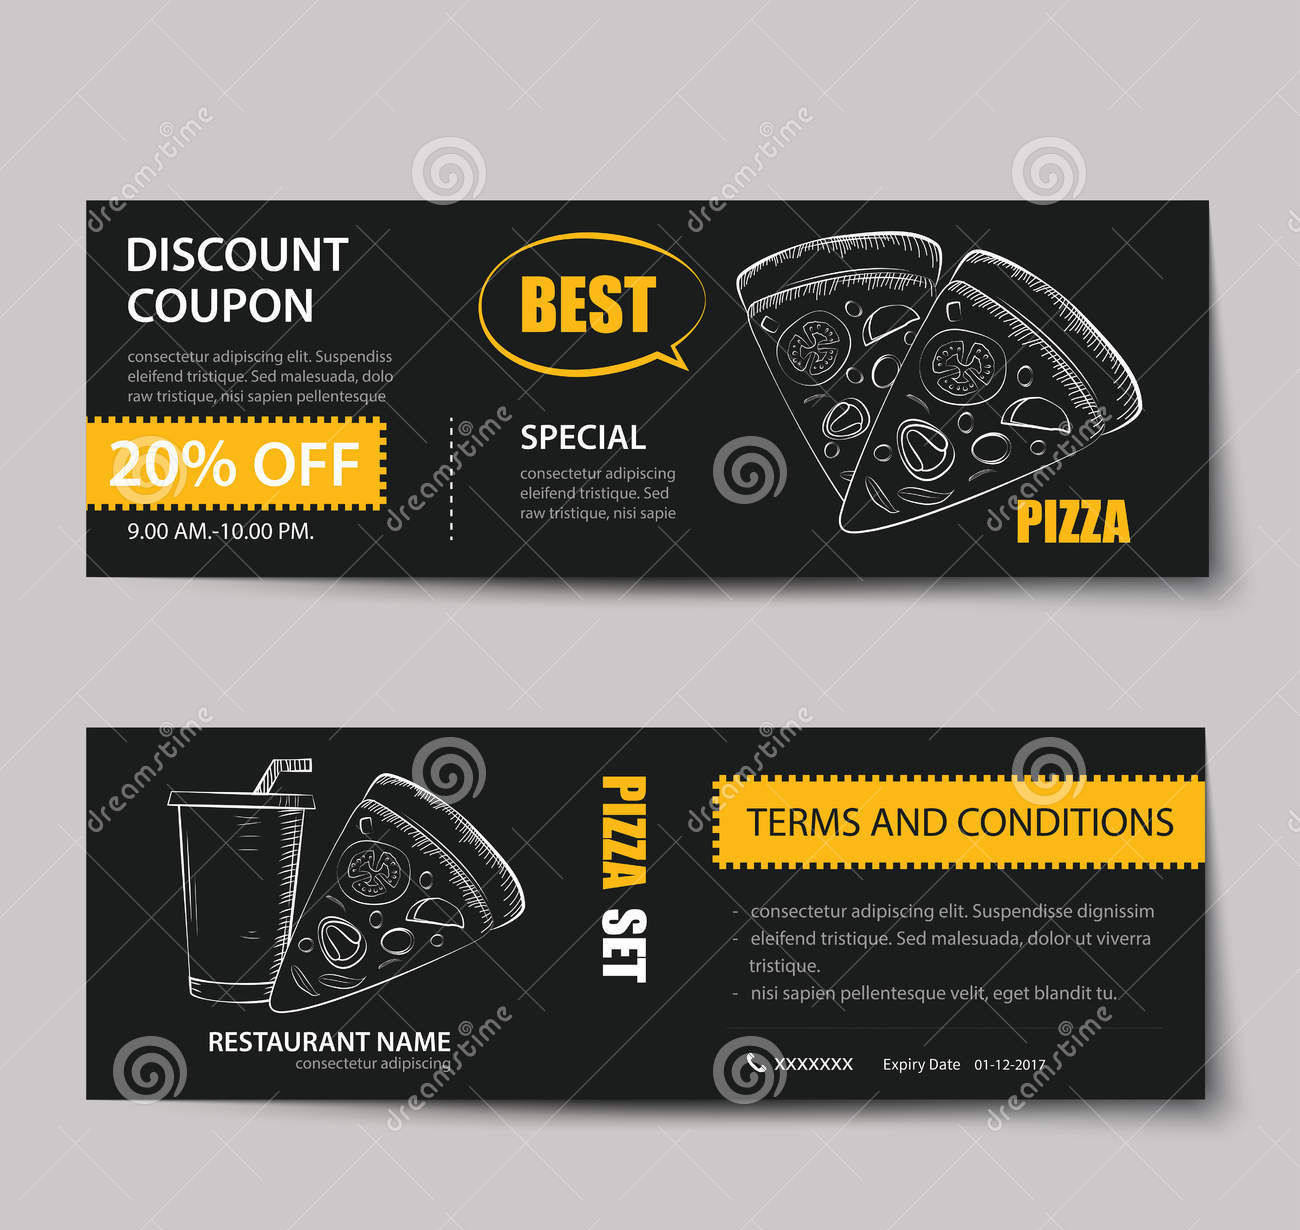 Discount coupons design